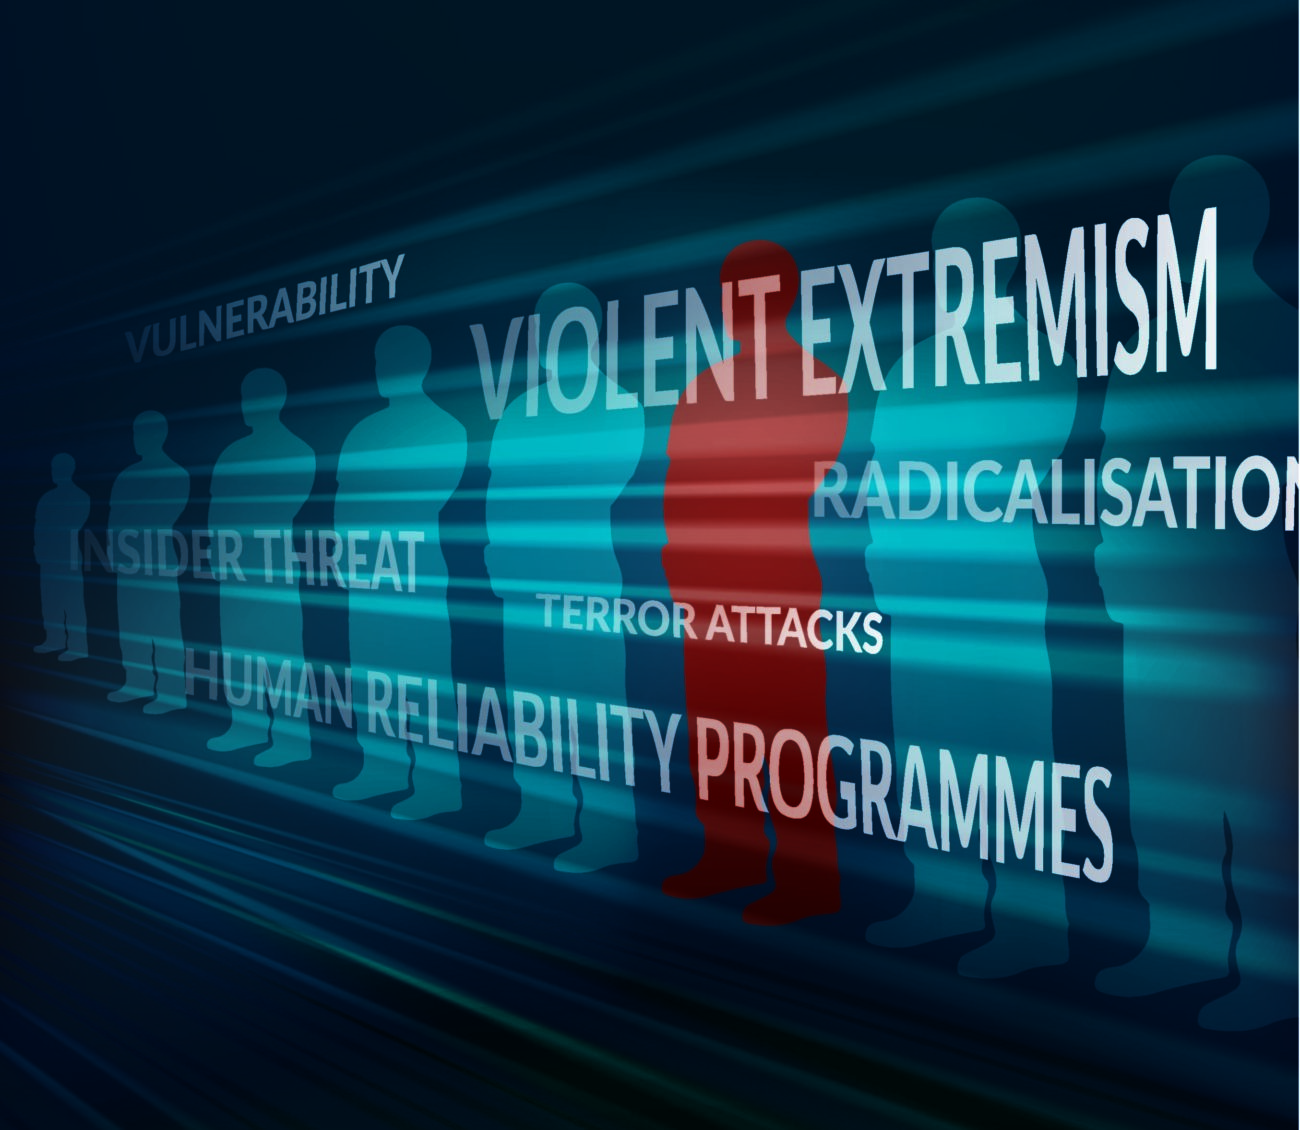 Webinar on Countering Violent Extremism in the Nuclear Sector: Key Findings of the December 2019 London Workshop